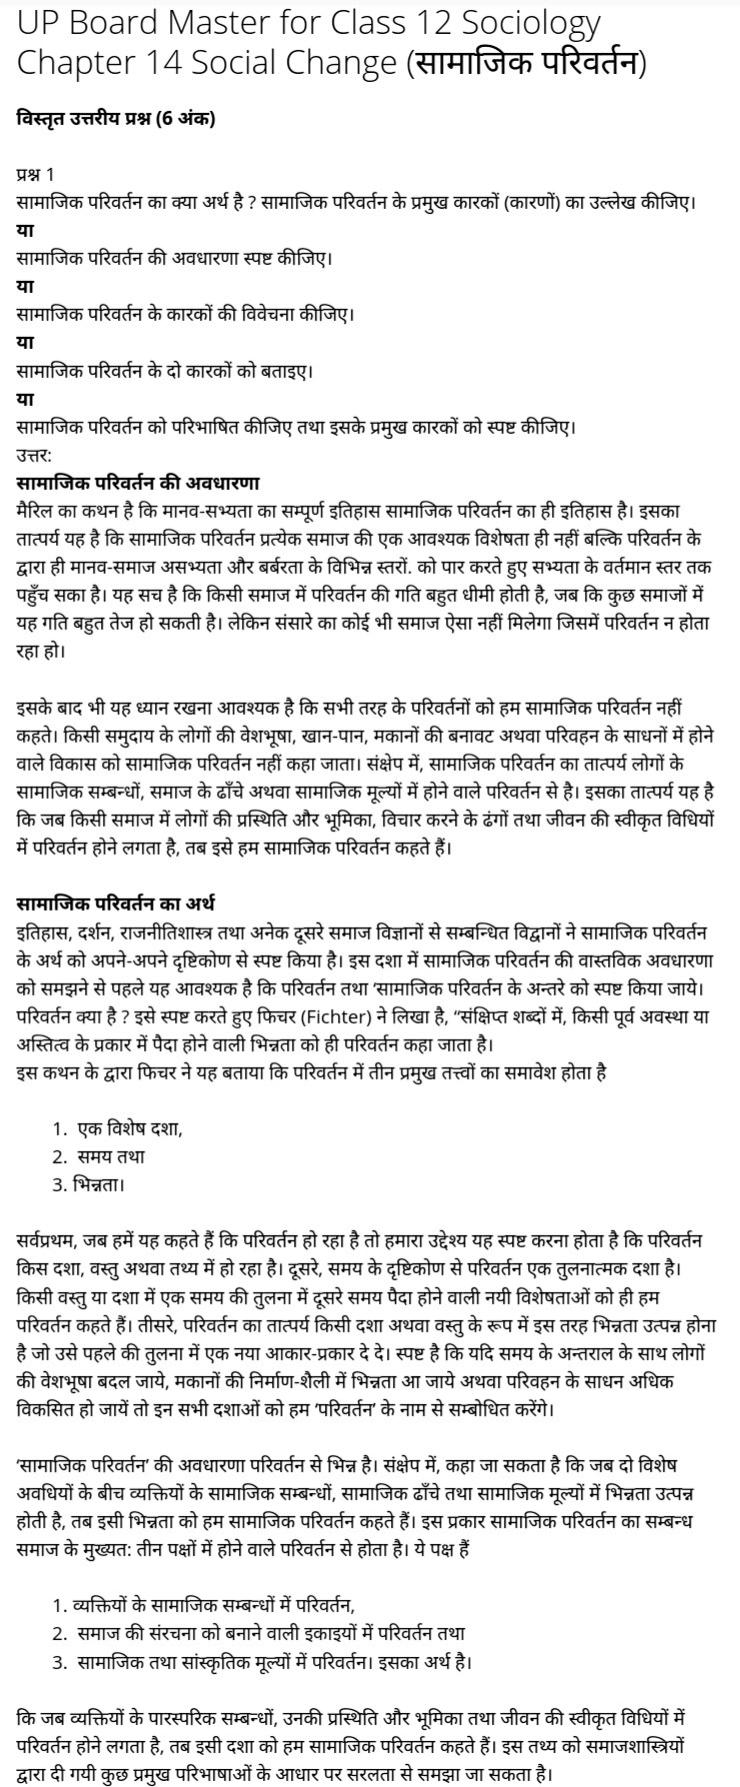 UP Board Solutions for Class 12 Sociology Chapter 14 Social Change (सामाजिक परिवर्तन)